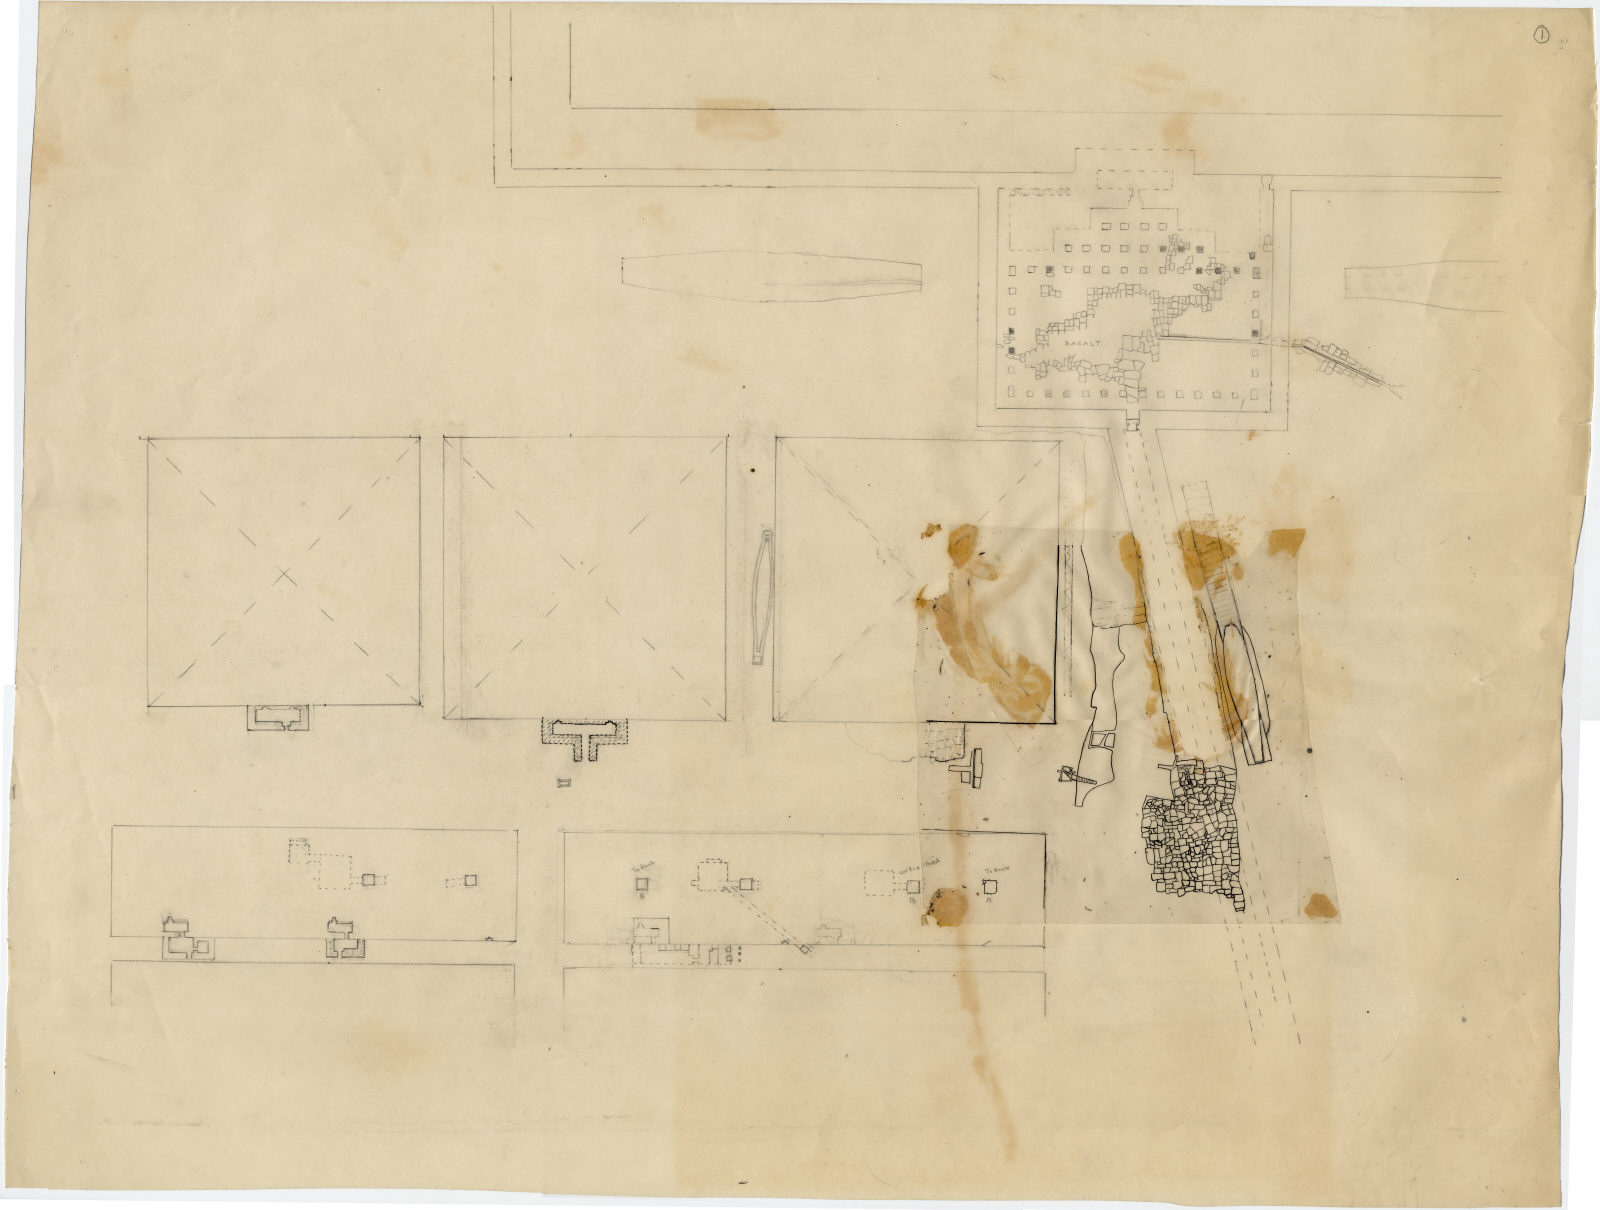 Maps and plans: Plan of G 7000 X, with positions of Khufu Pyramid, G I-a, G I-b, G I-c, G I-x, G 7110-7120, G 7130-7140